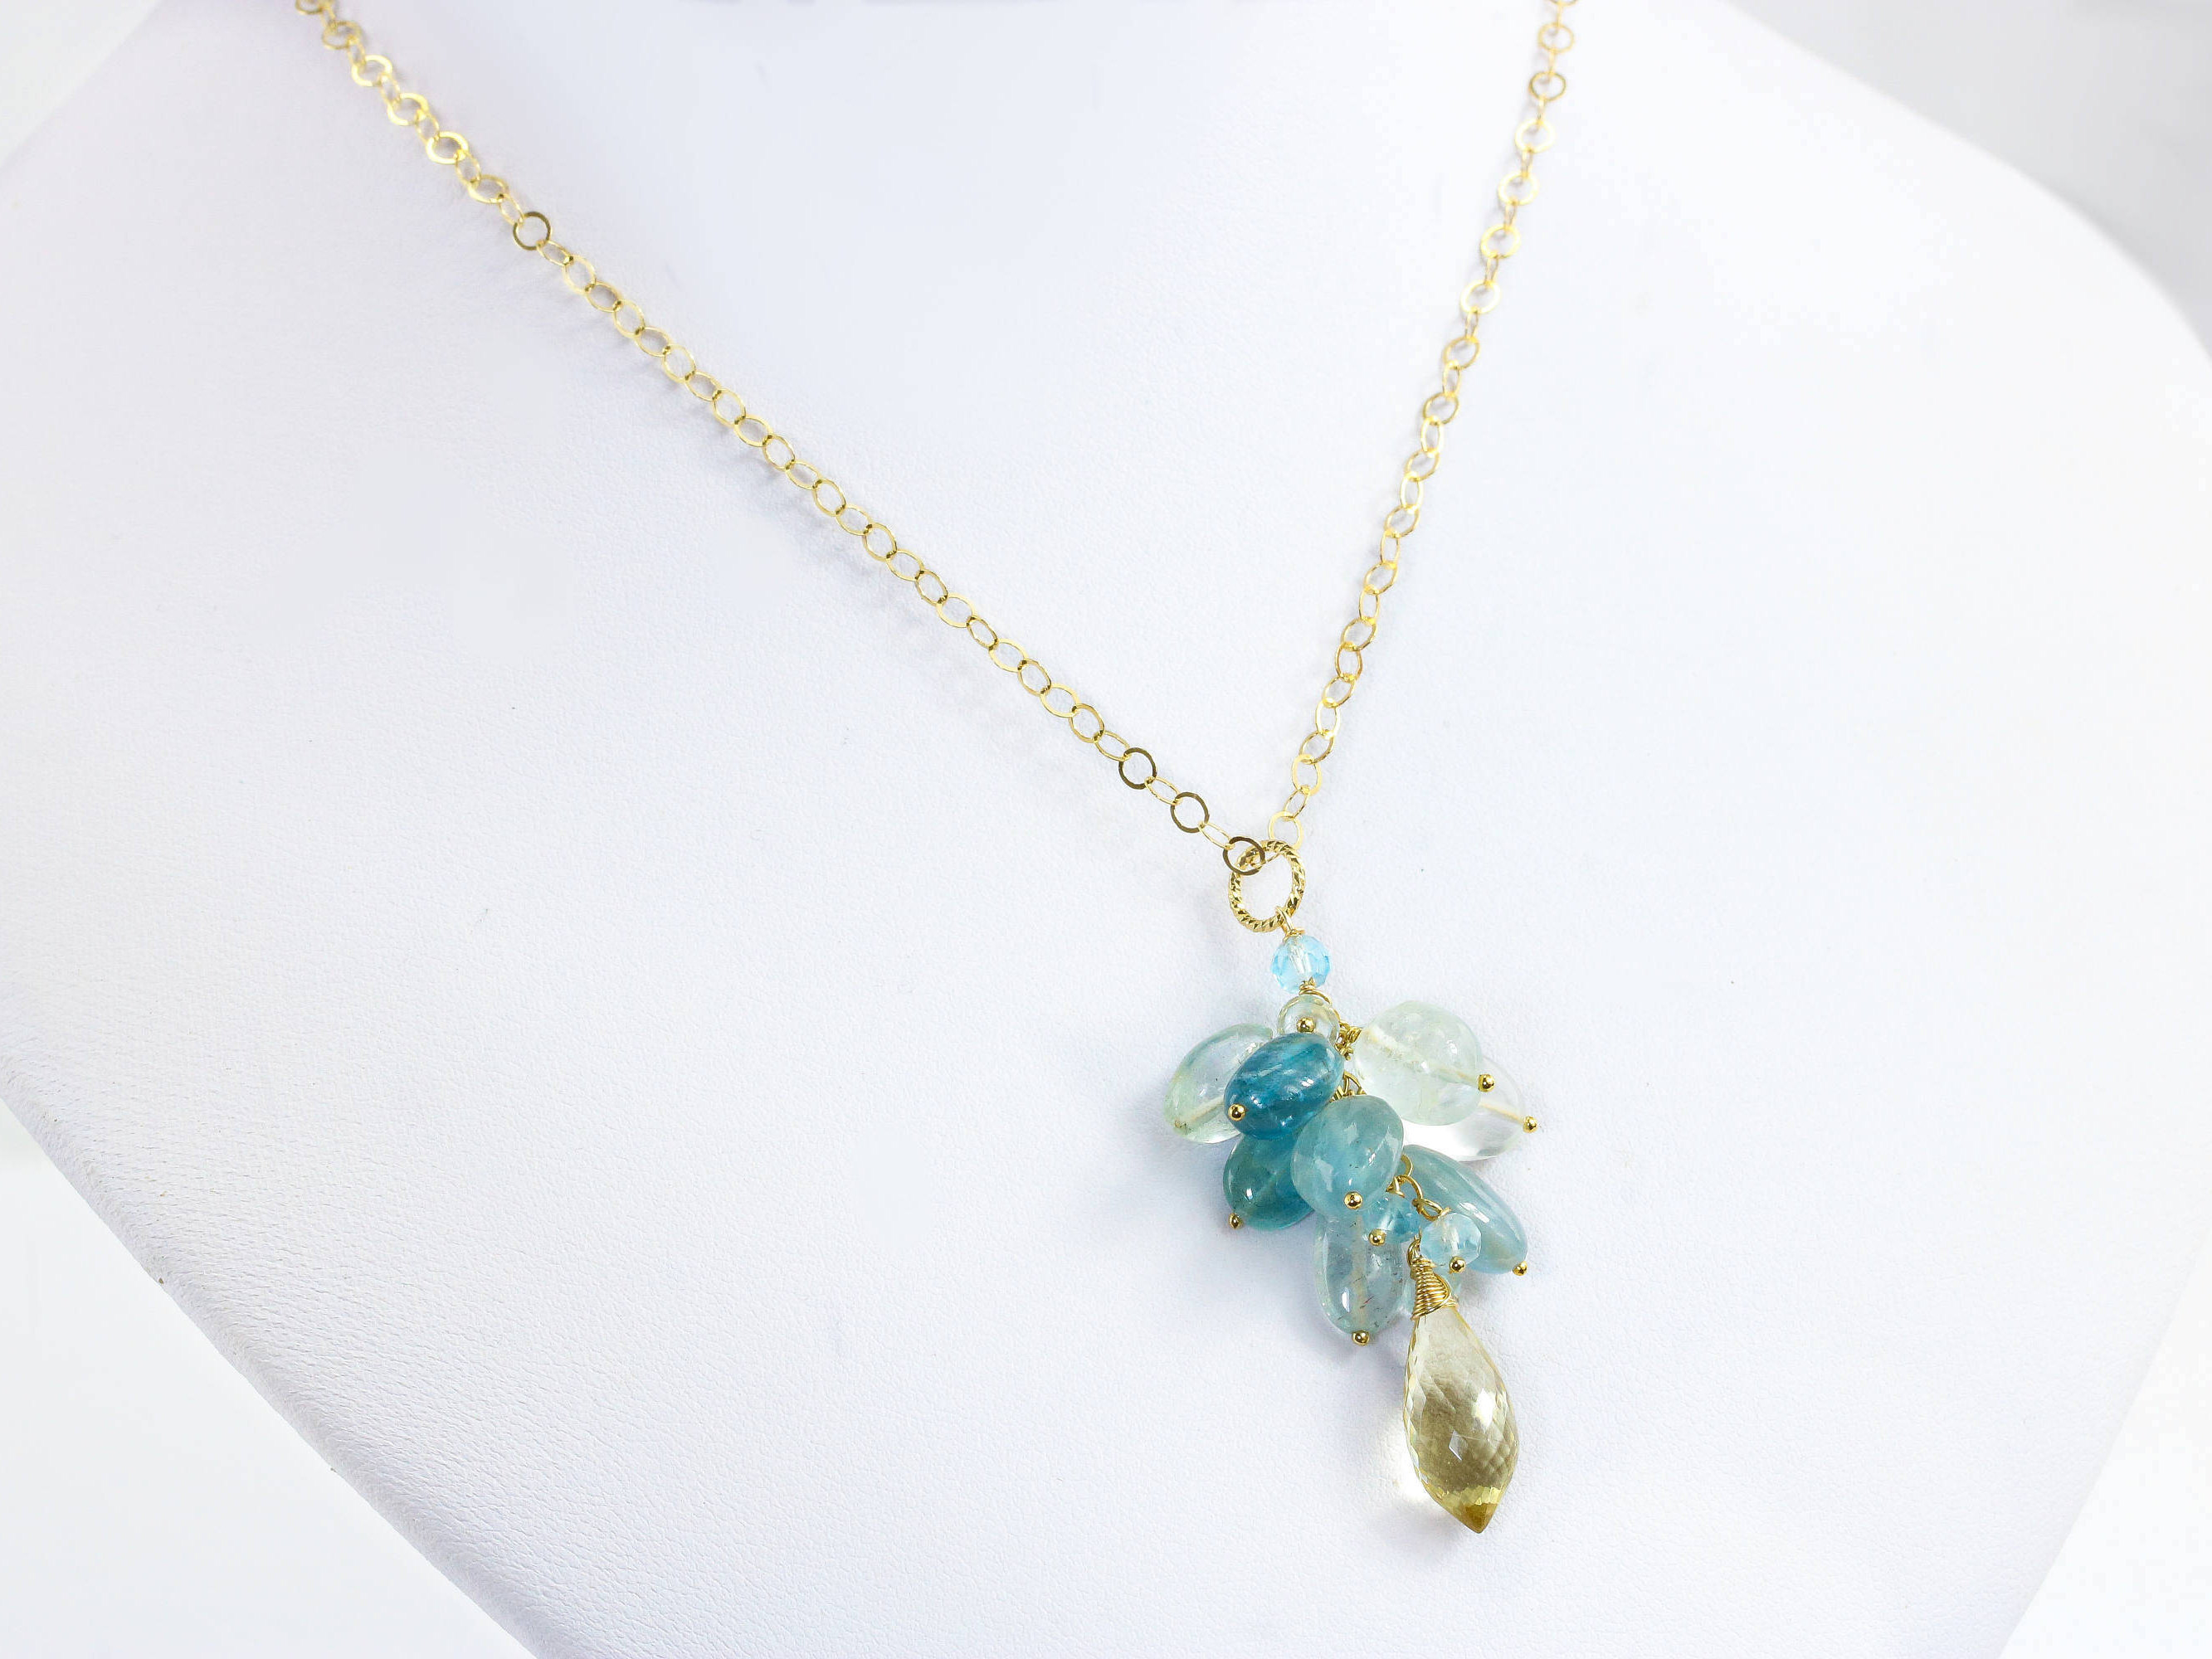 necklace in aquamarine pendant sterling silver maine